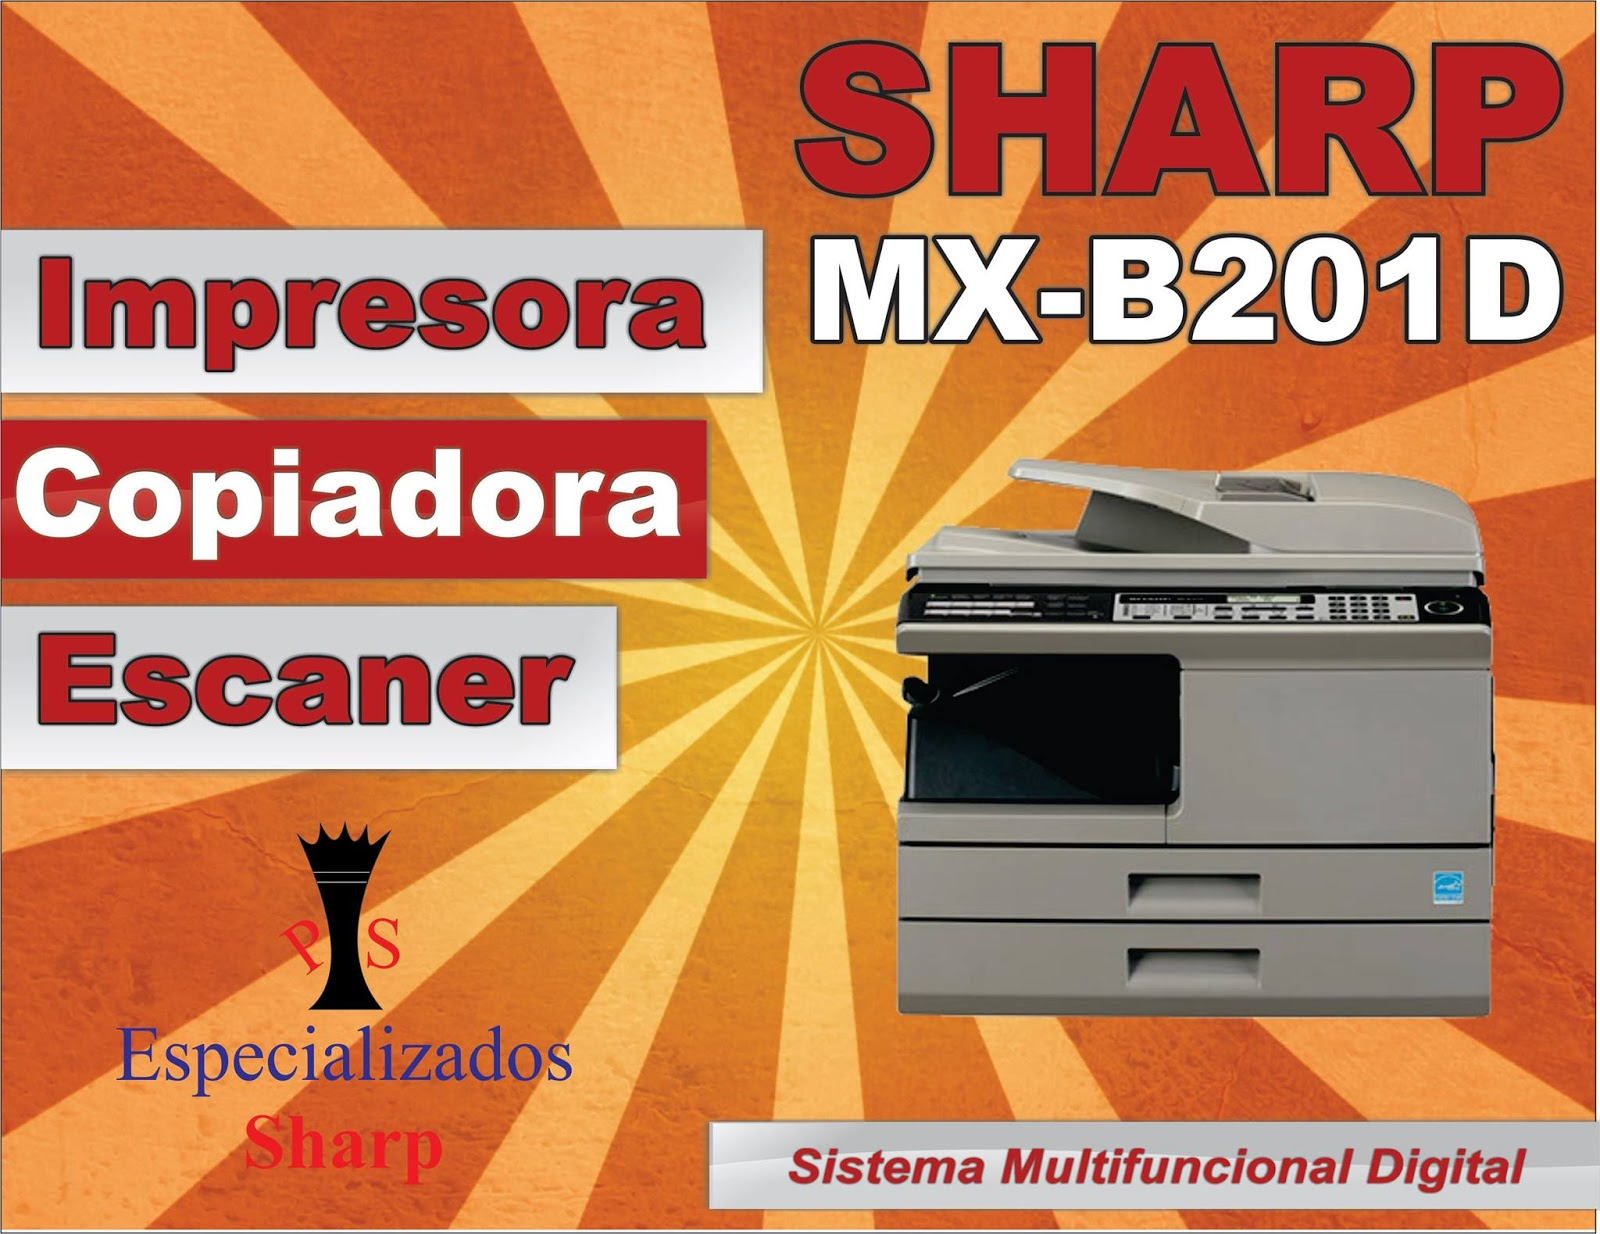 Copiadora Sharp Mxb201d Carta Y Oficio 20 Xmin 6 999